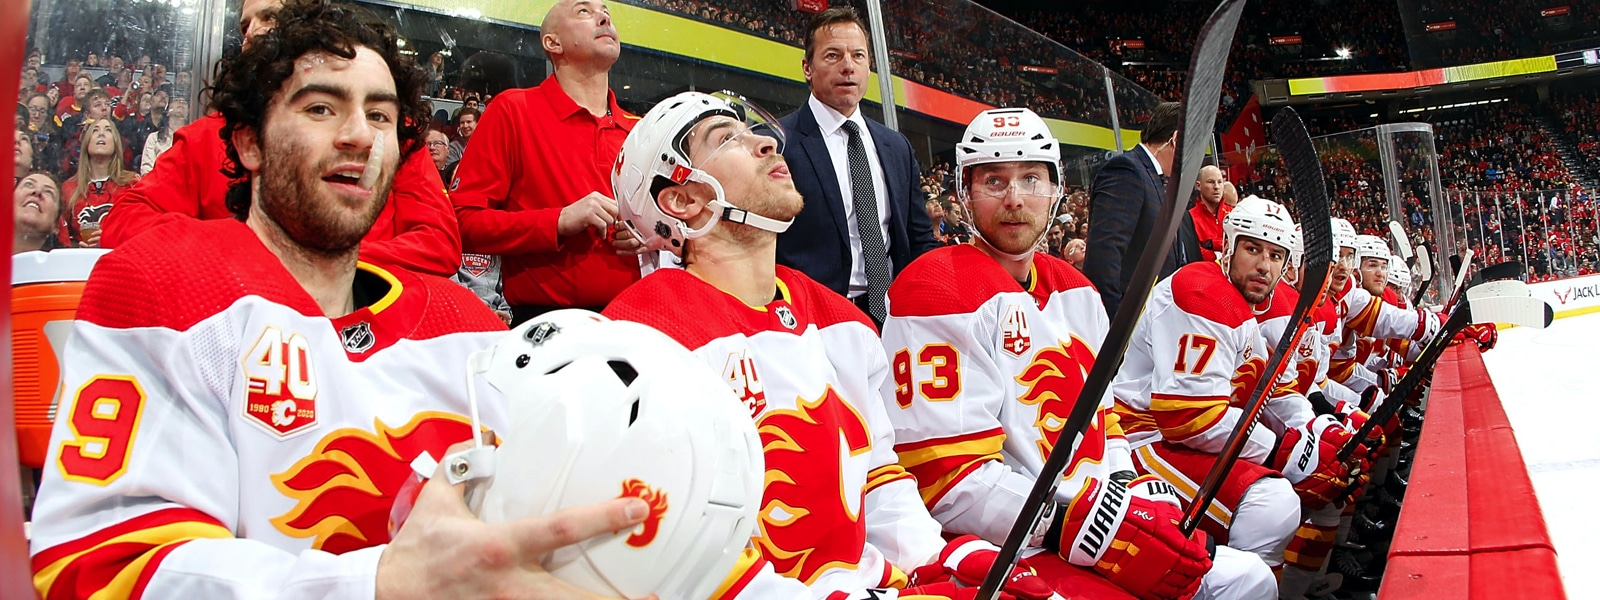 Flames Unfiltered – Episode 78 – The Fans Speak! – Markstrom, Ward and the Core